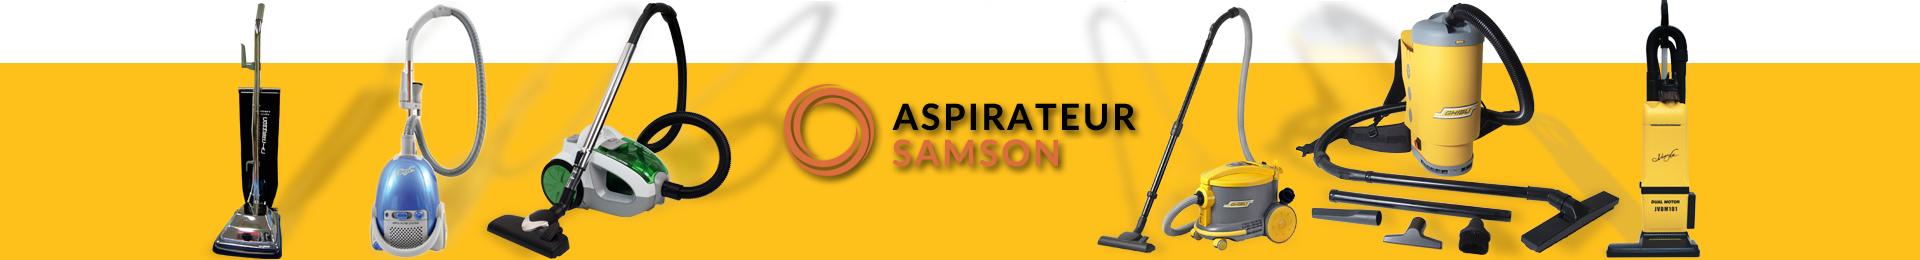 Aspirateur Samson aspirateur résidentiel commercial central